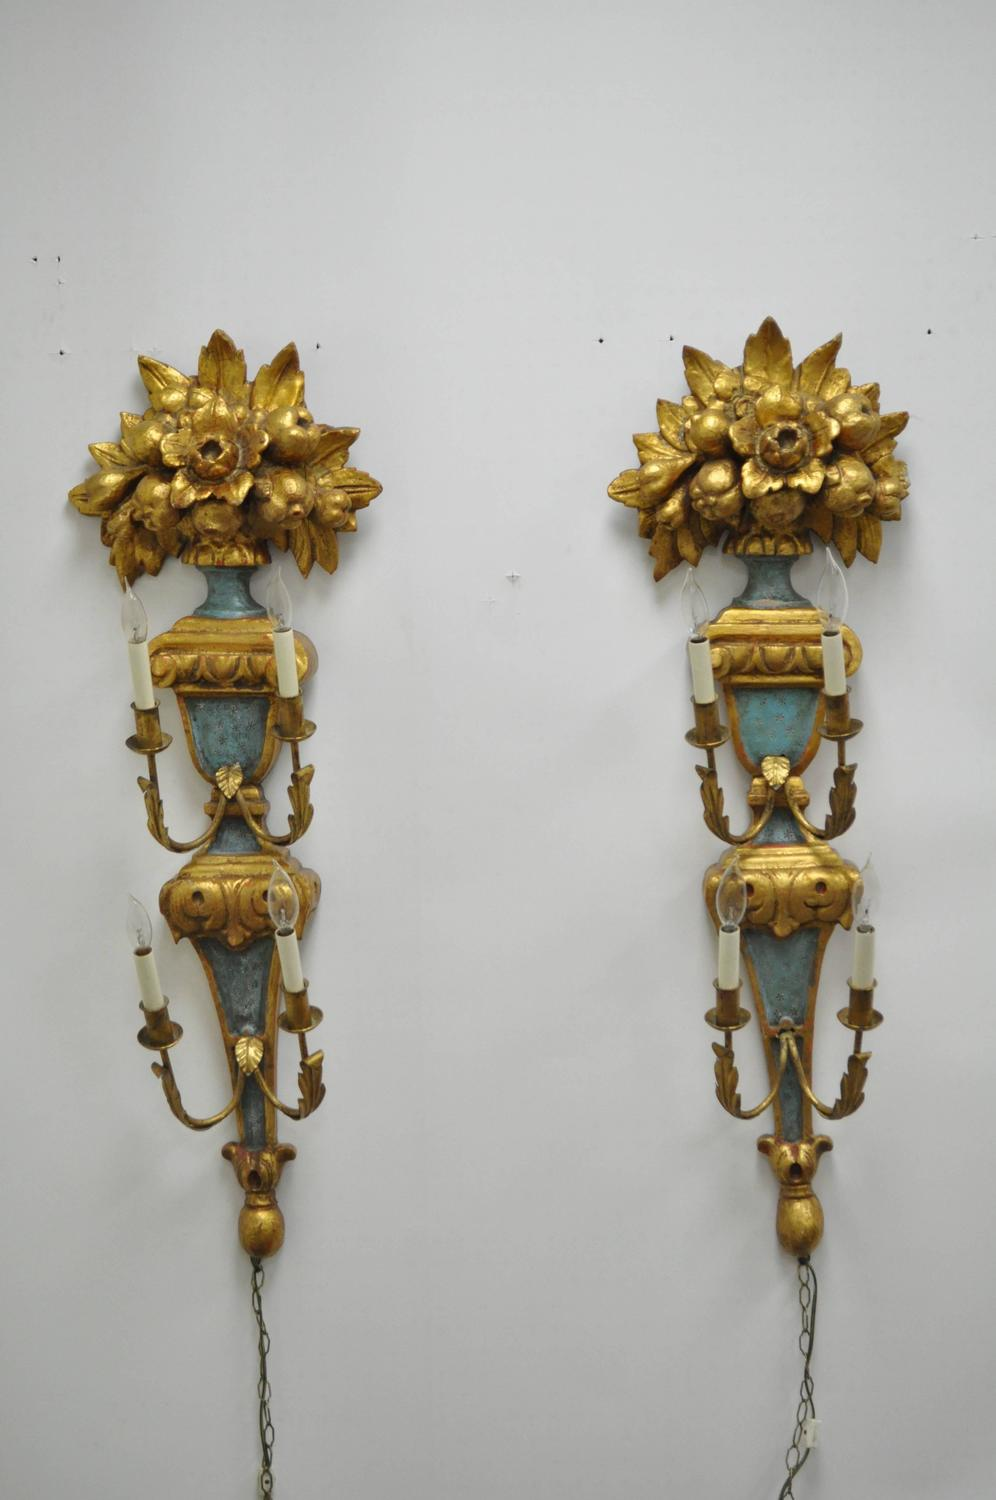 Italian Style Wall Sconces : Pair of 1950s Carved Giltwood Italian Style Four-Light Wall Sconces by Masa For Sale at 1stdibs